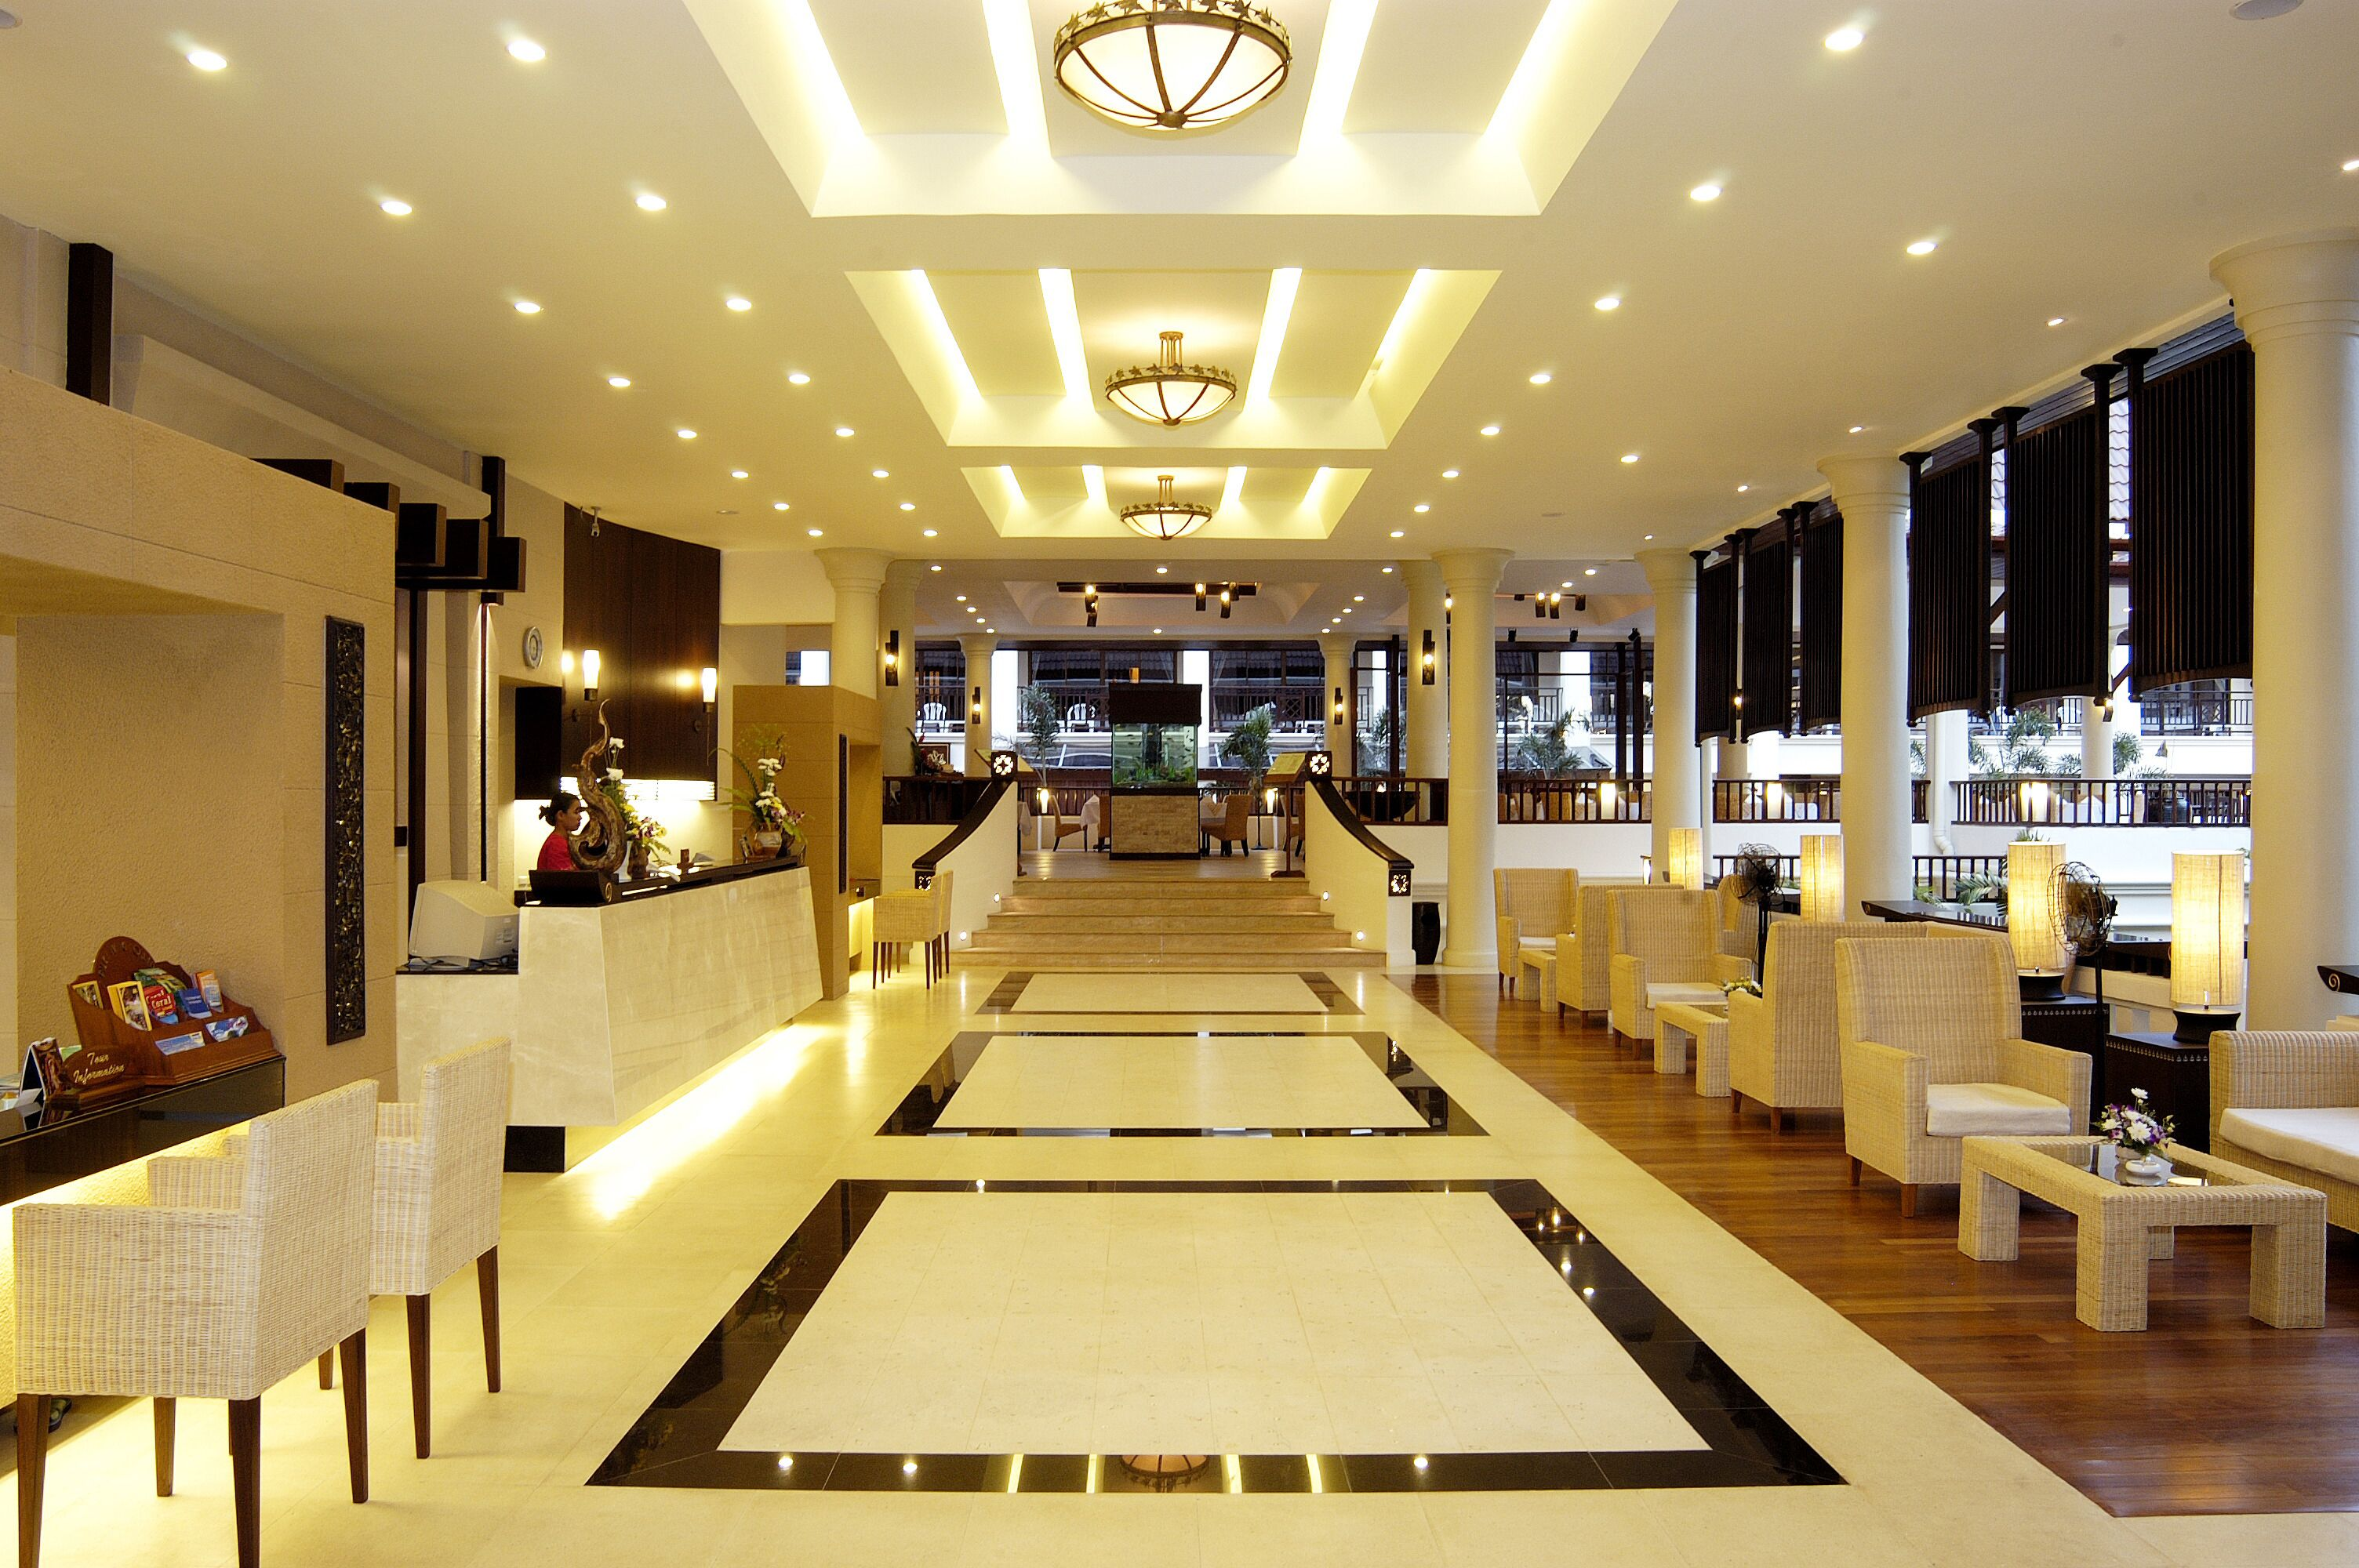 Hotel Lobby Find Out The Best Luxury Hotel Lobby Lighting Design Selection For